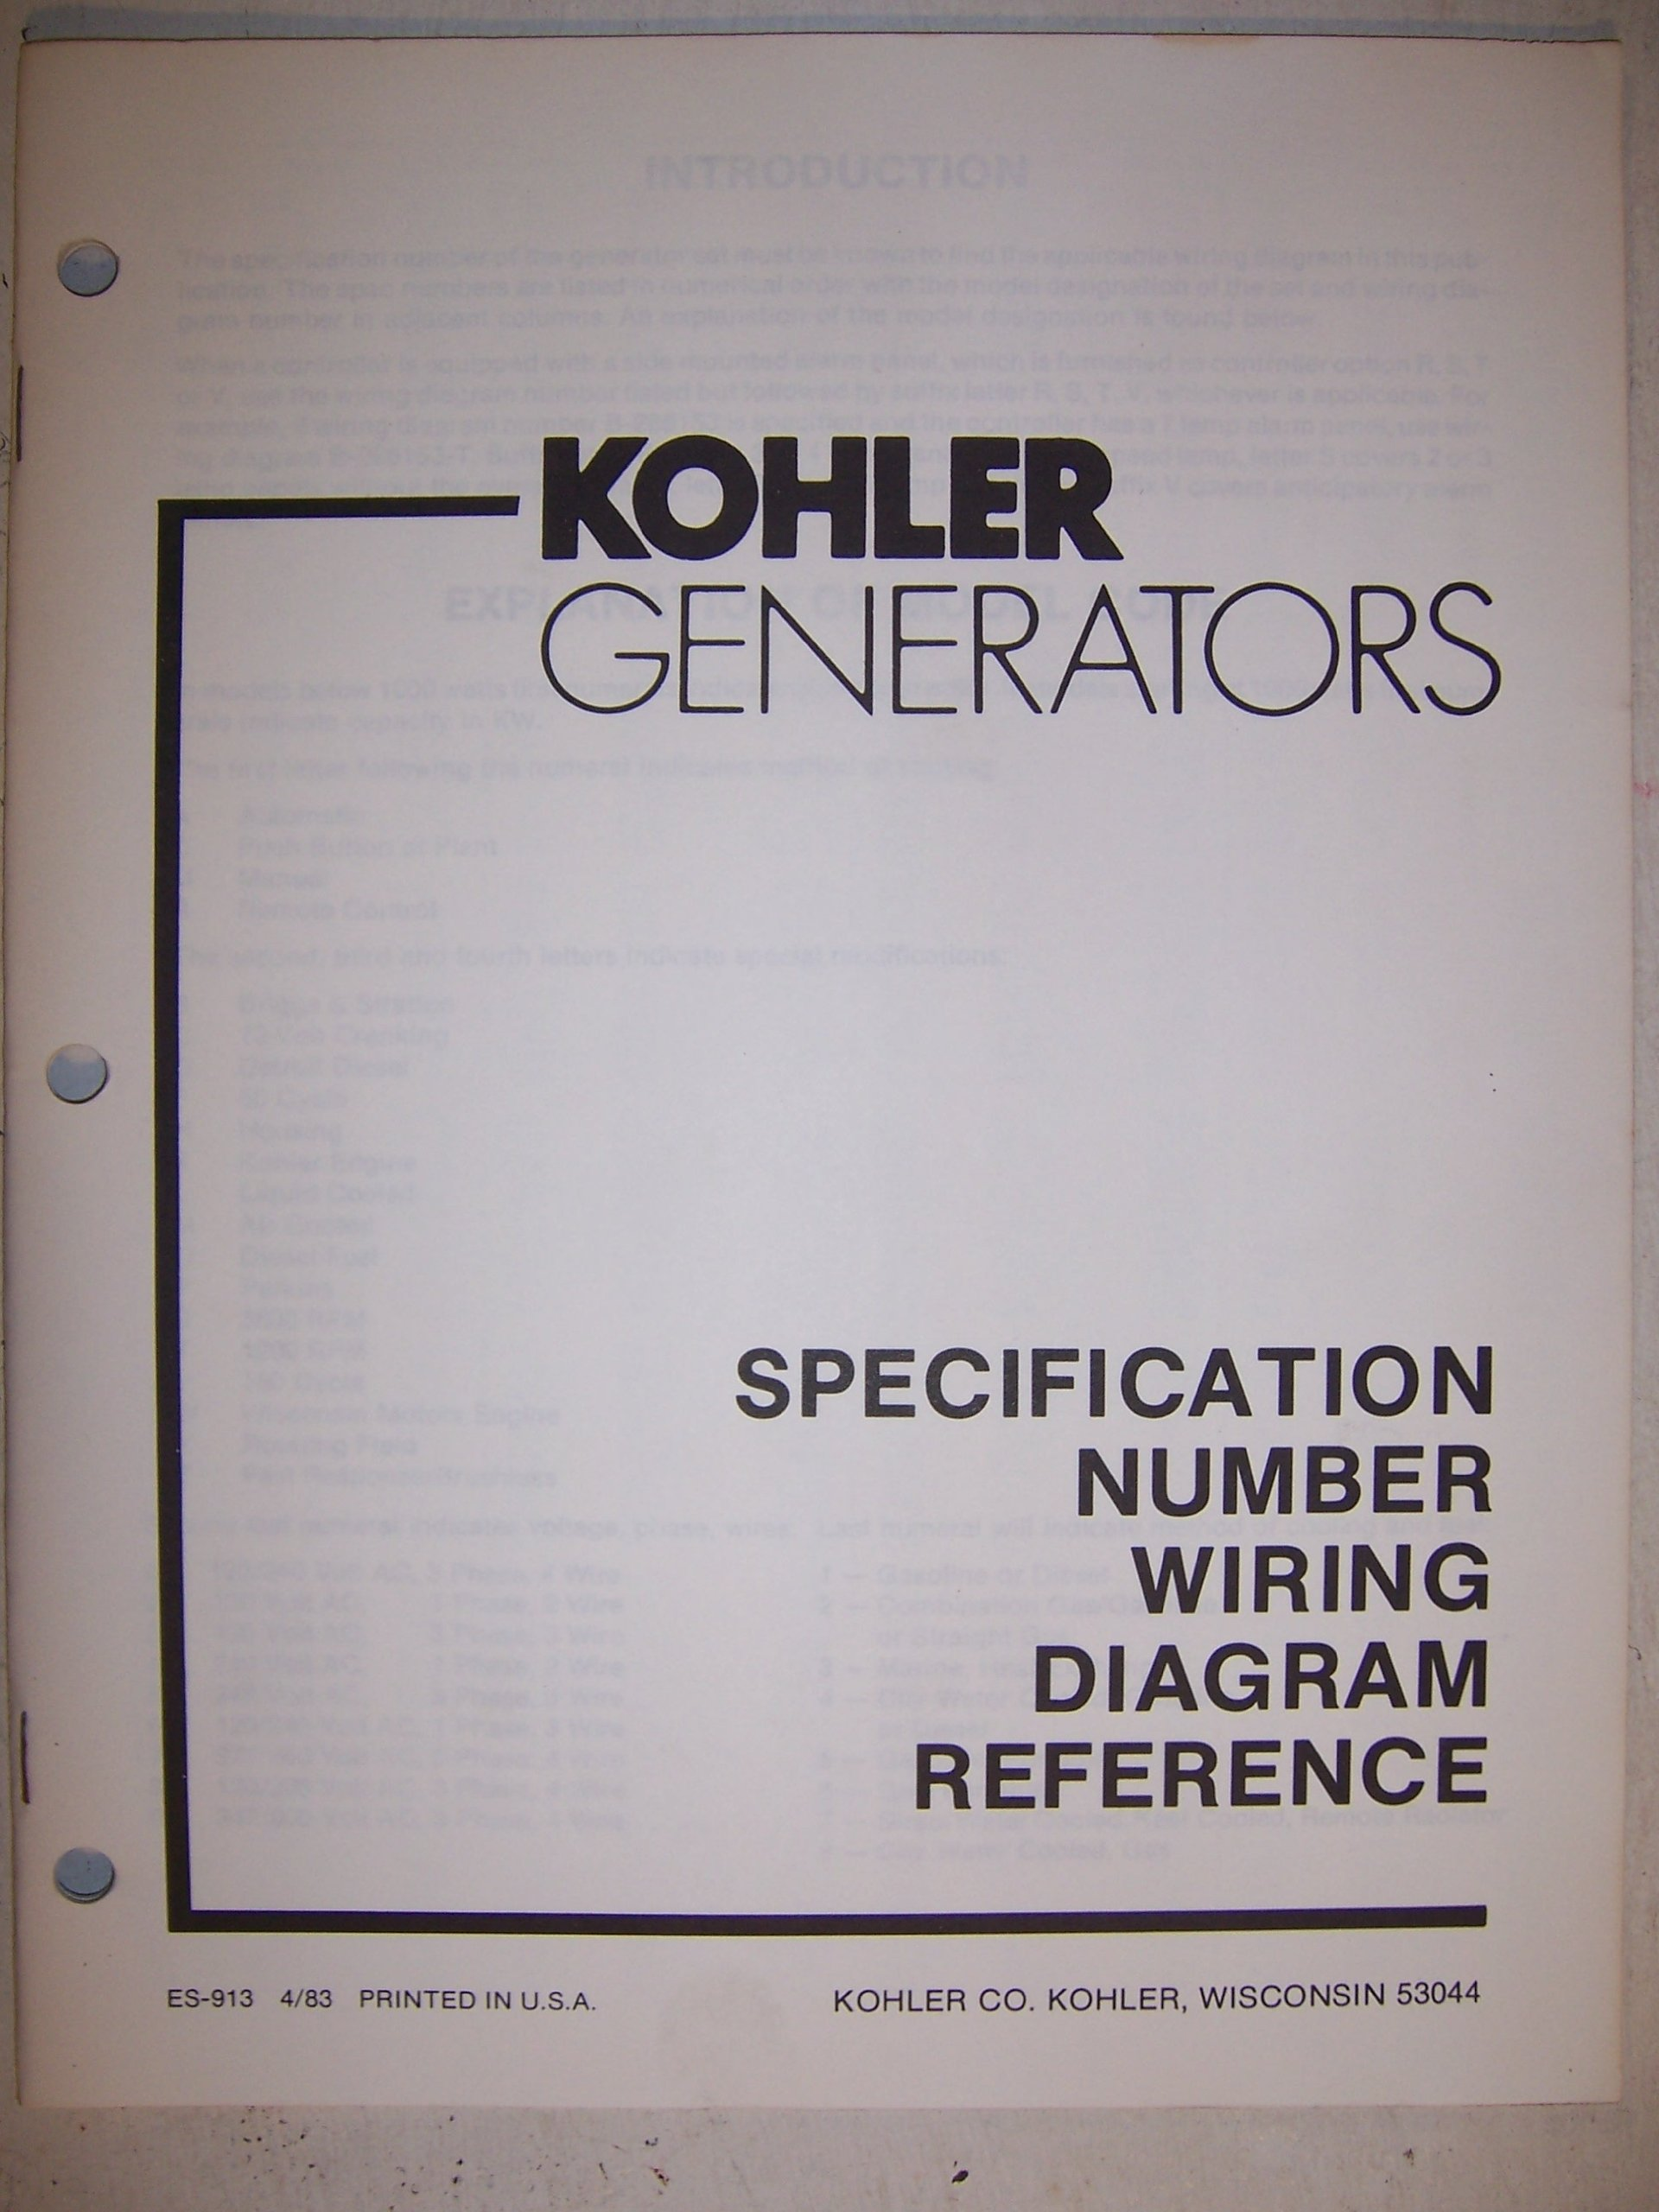 kohler generators specification number wiring diagram reference Atlas Copco Generator Wiring Diagram